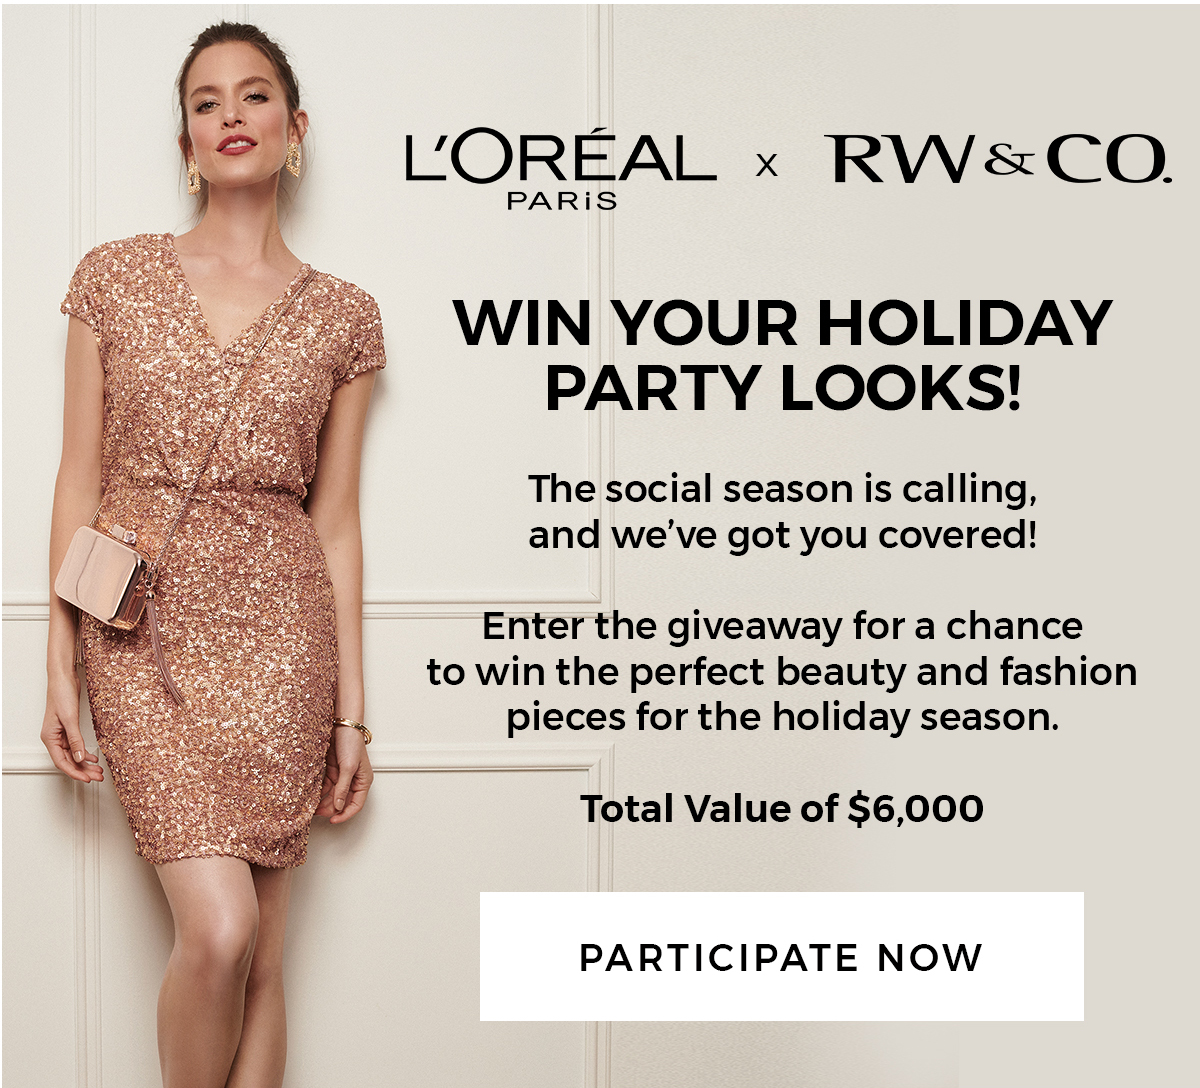 WIN YOUR HOLIDAY PARTY LOOKS!